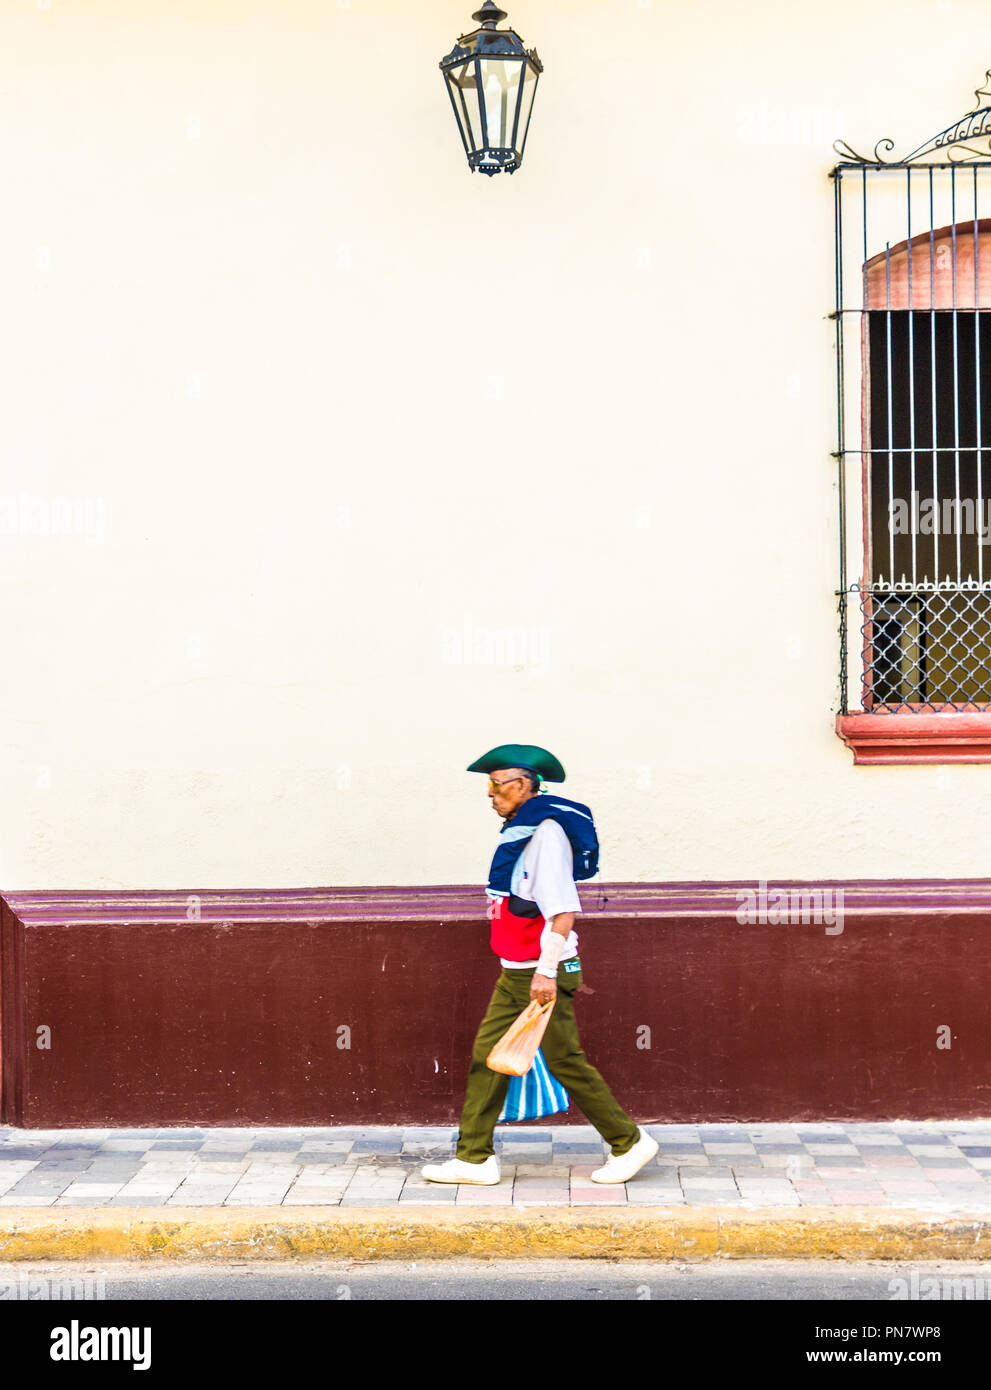 Leon Nicaragua. February 2018. A typical street scene in Leon in Nicaragua - Stock Image